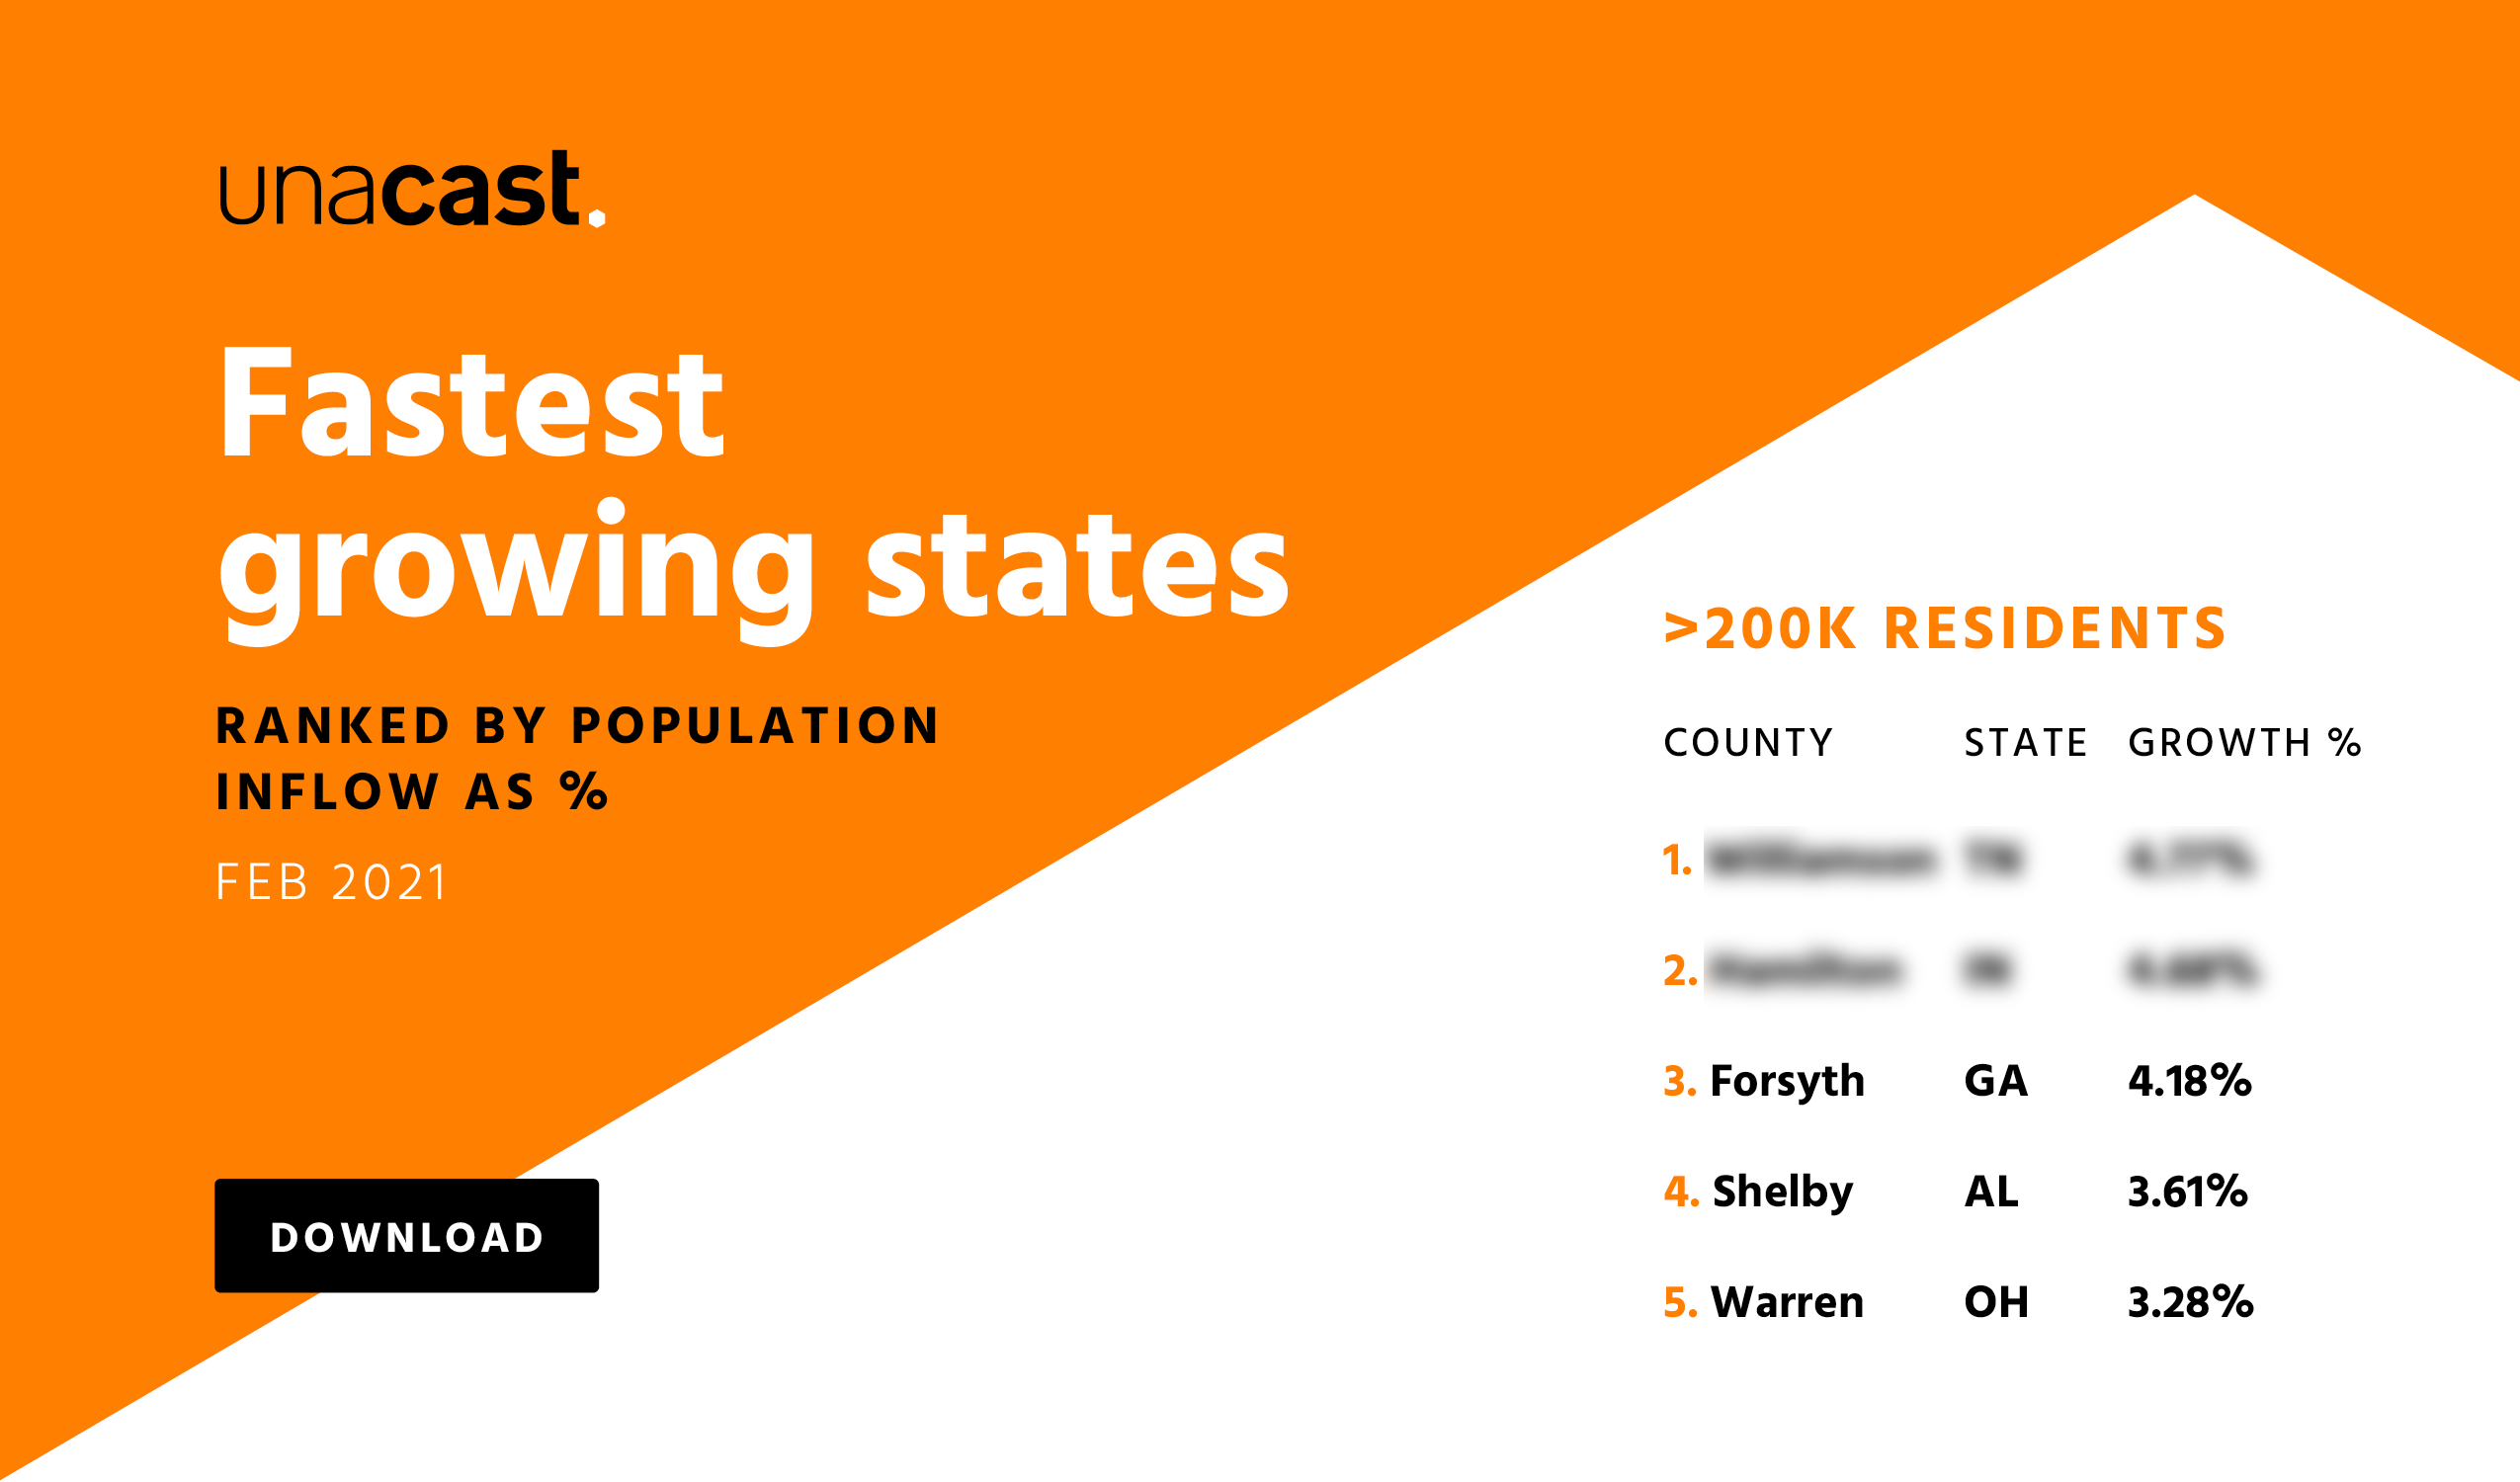 Fastest growing states and counties in the US